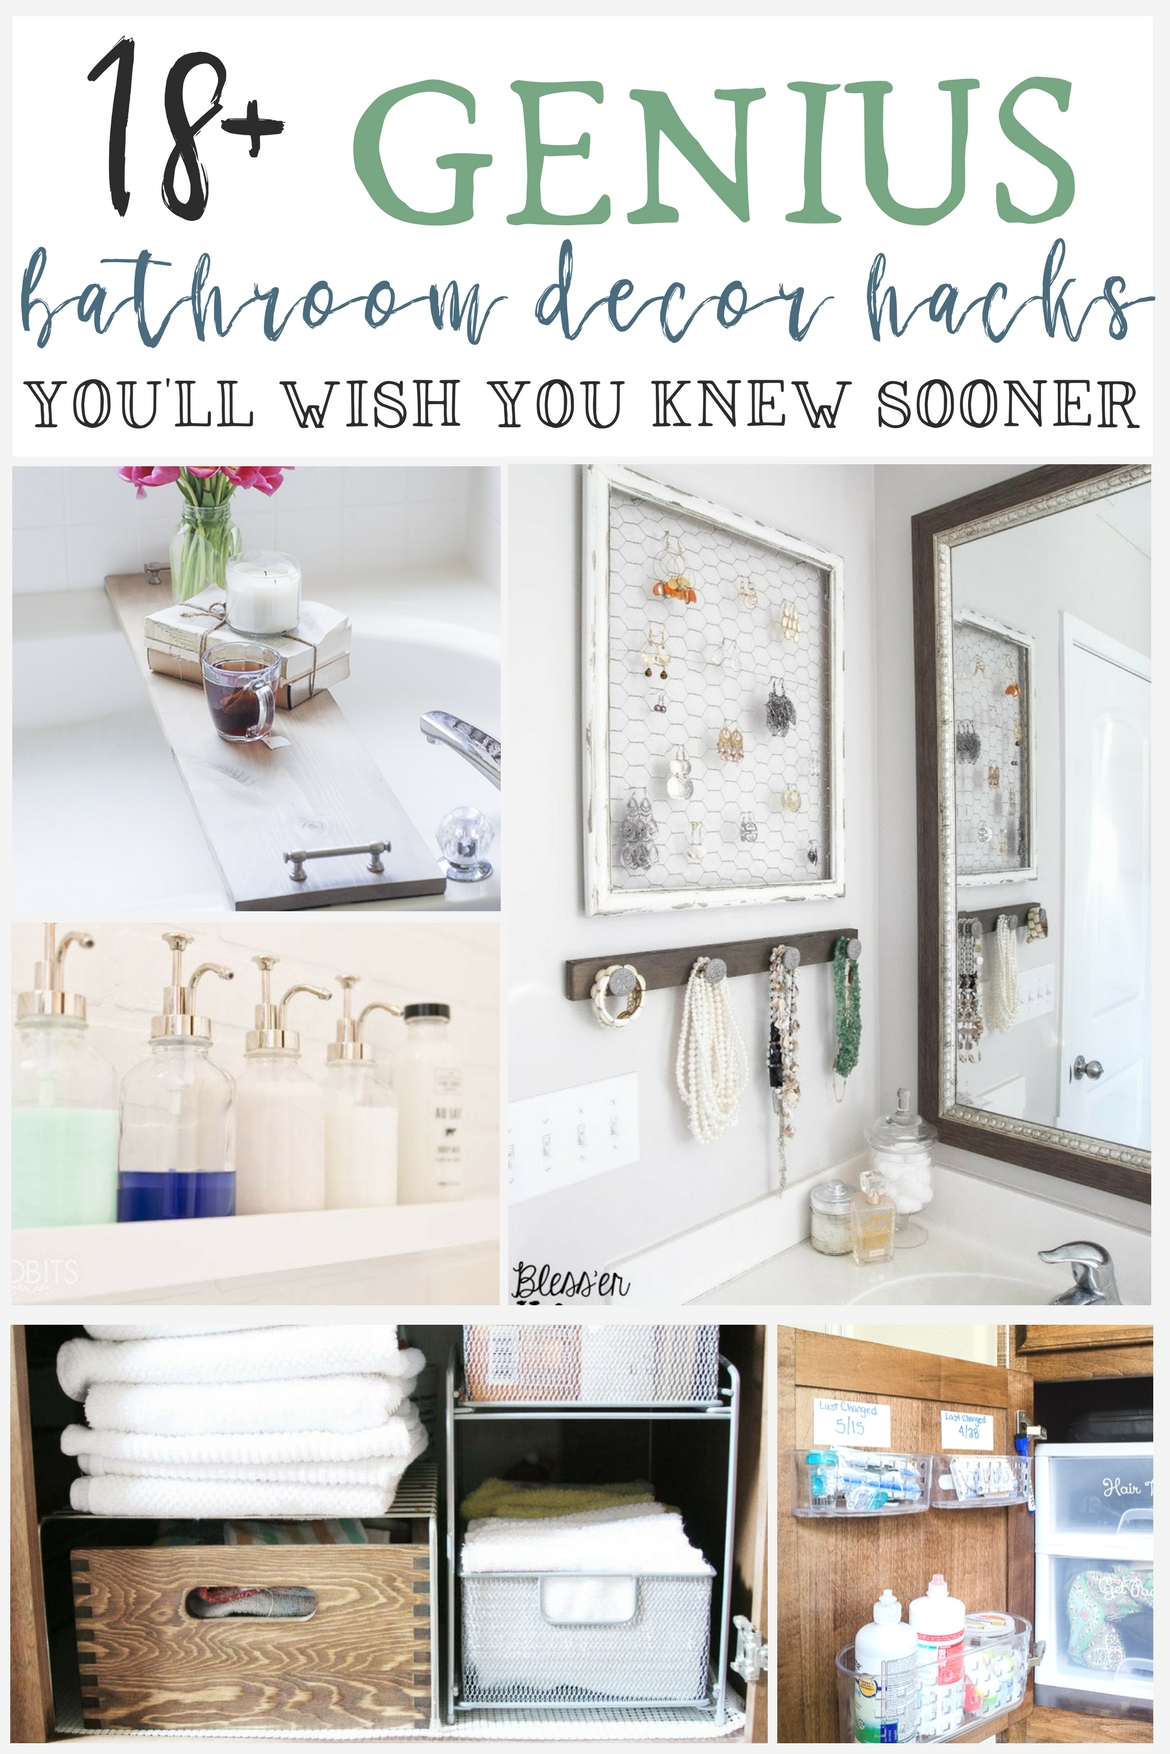 18+ Genius Bathroom Organization U0026 Decor Hacks Youu0027ll Wish You Knew Sooner    The Weathered Fox